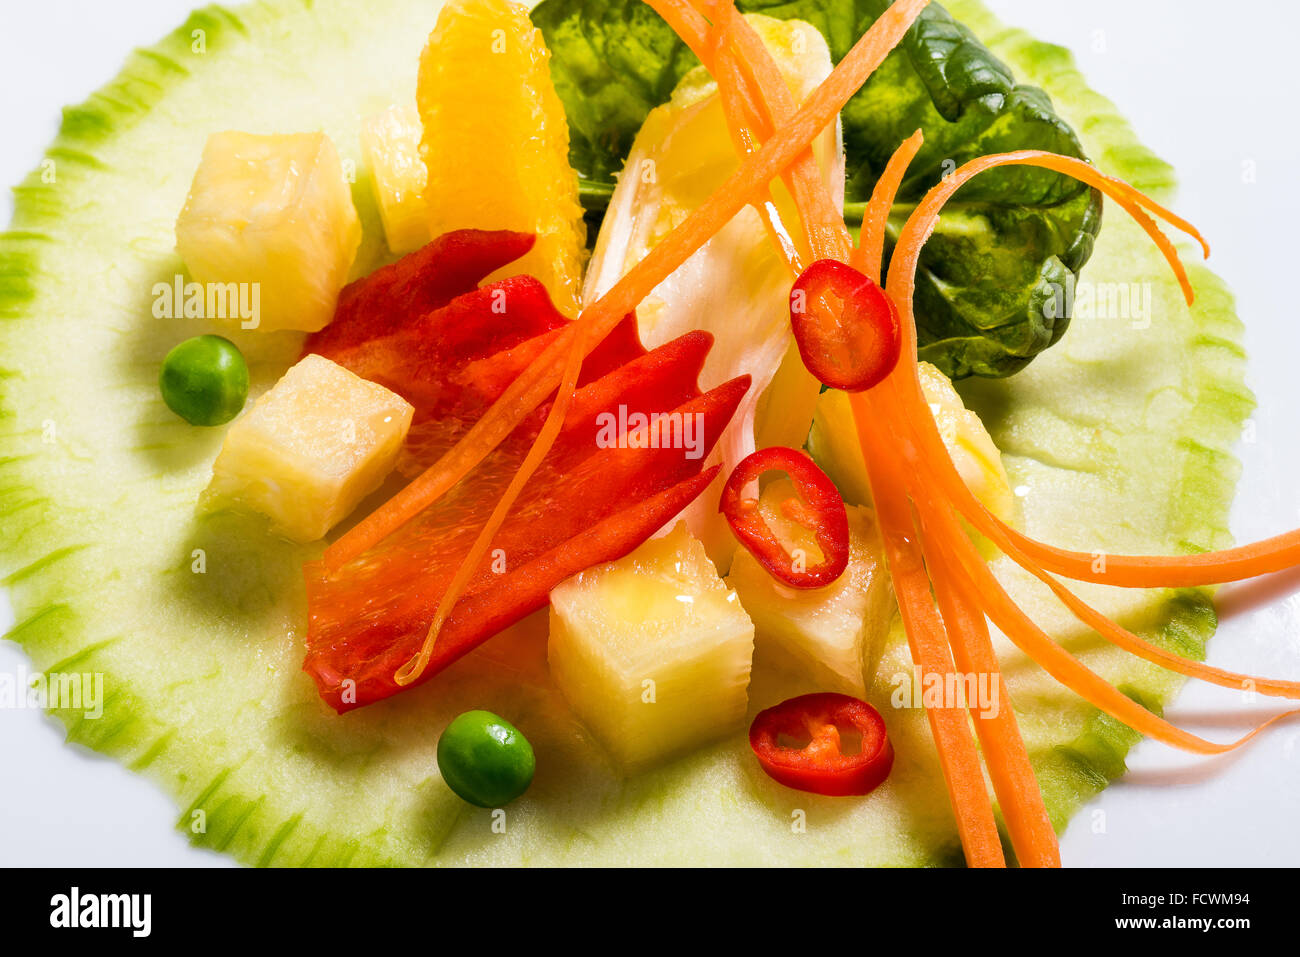 Salad Creation Fitness salad fresh on the plate. Cucumber, baby spinach, carrot, chicory, fresh pineapple, peppers, - Stock Image